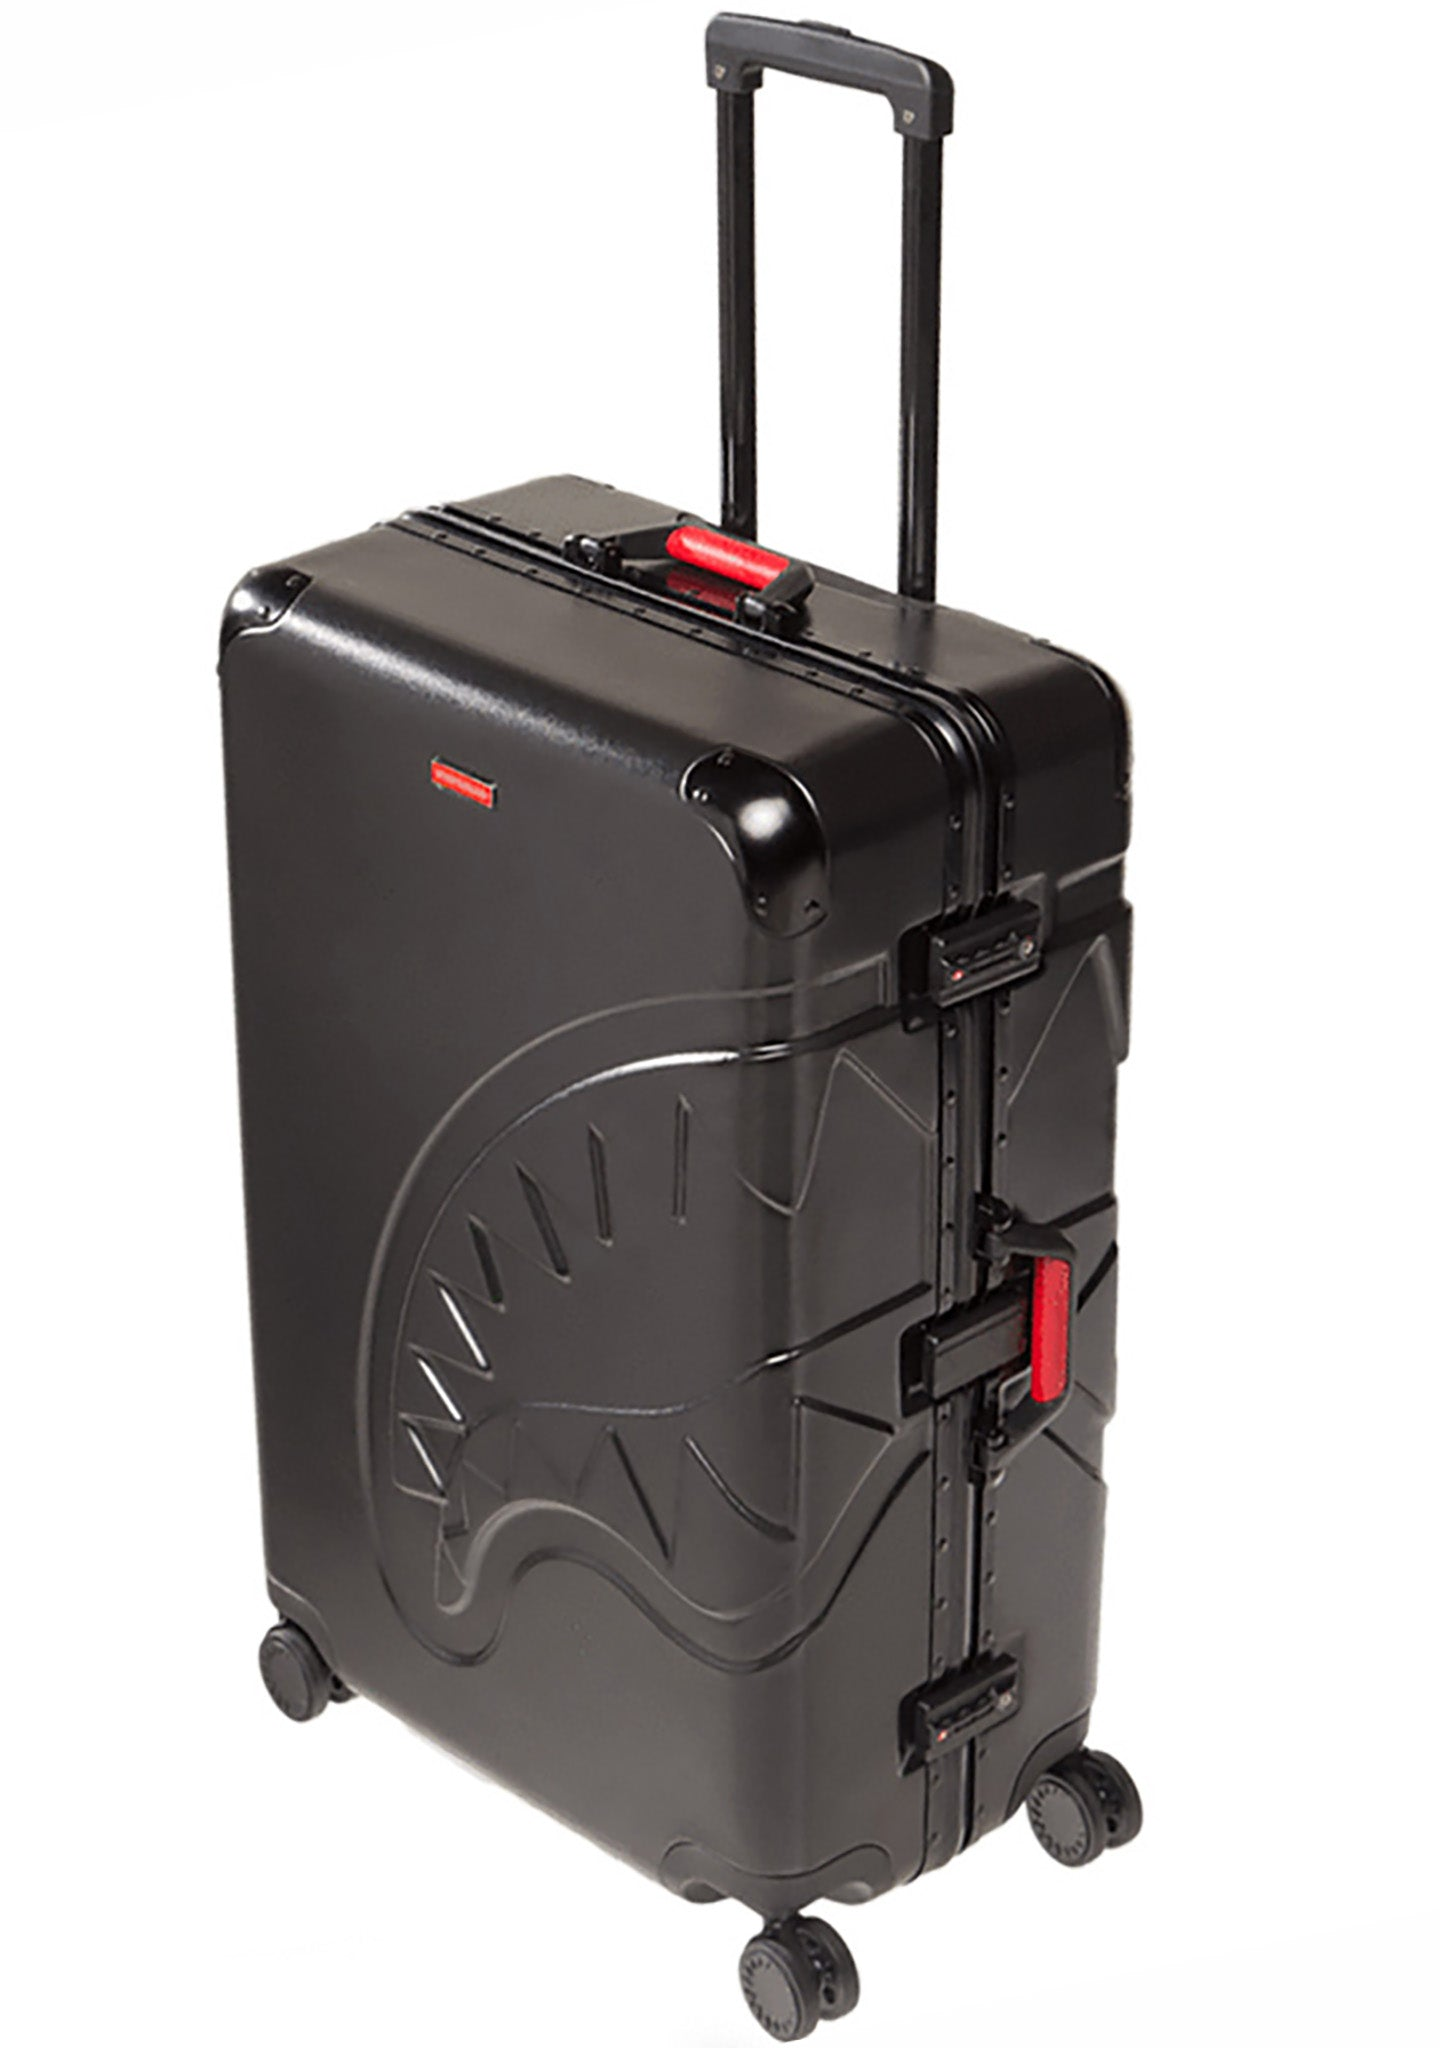 "Embossed Black Shark 29"" Carry-On Roller Luggage"